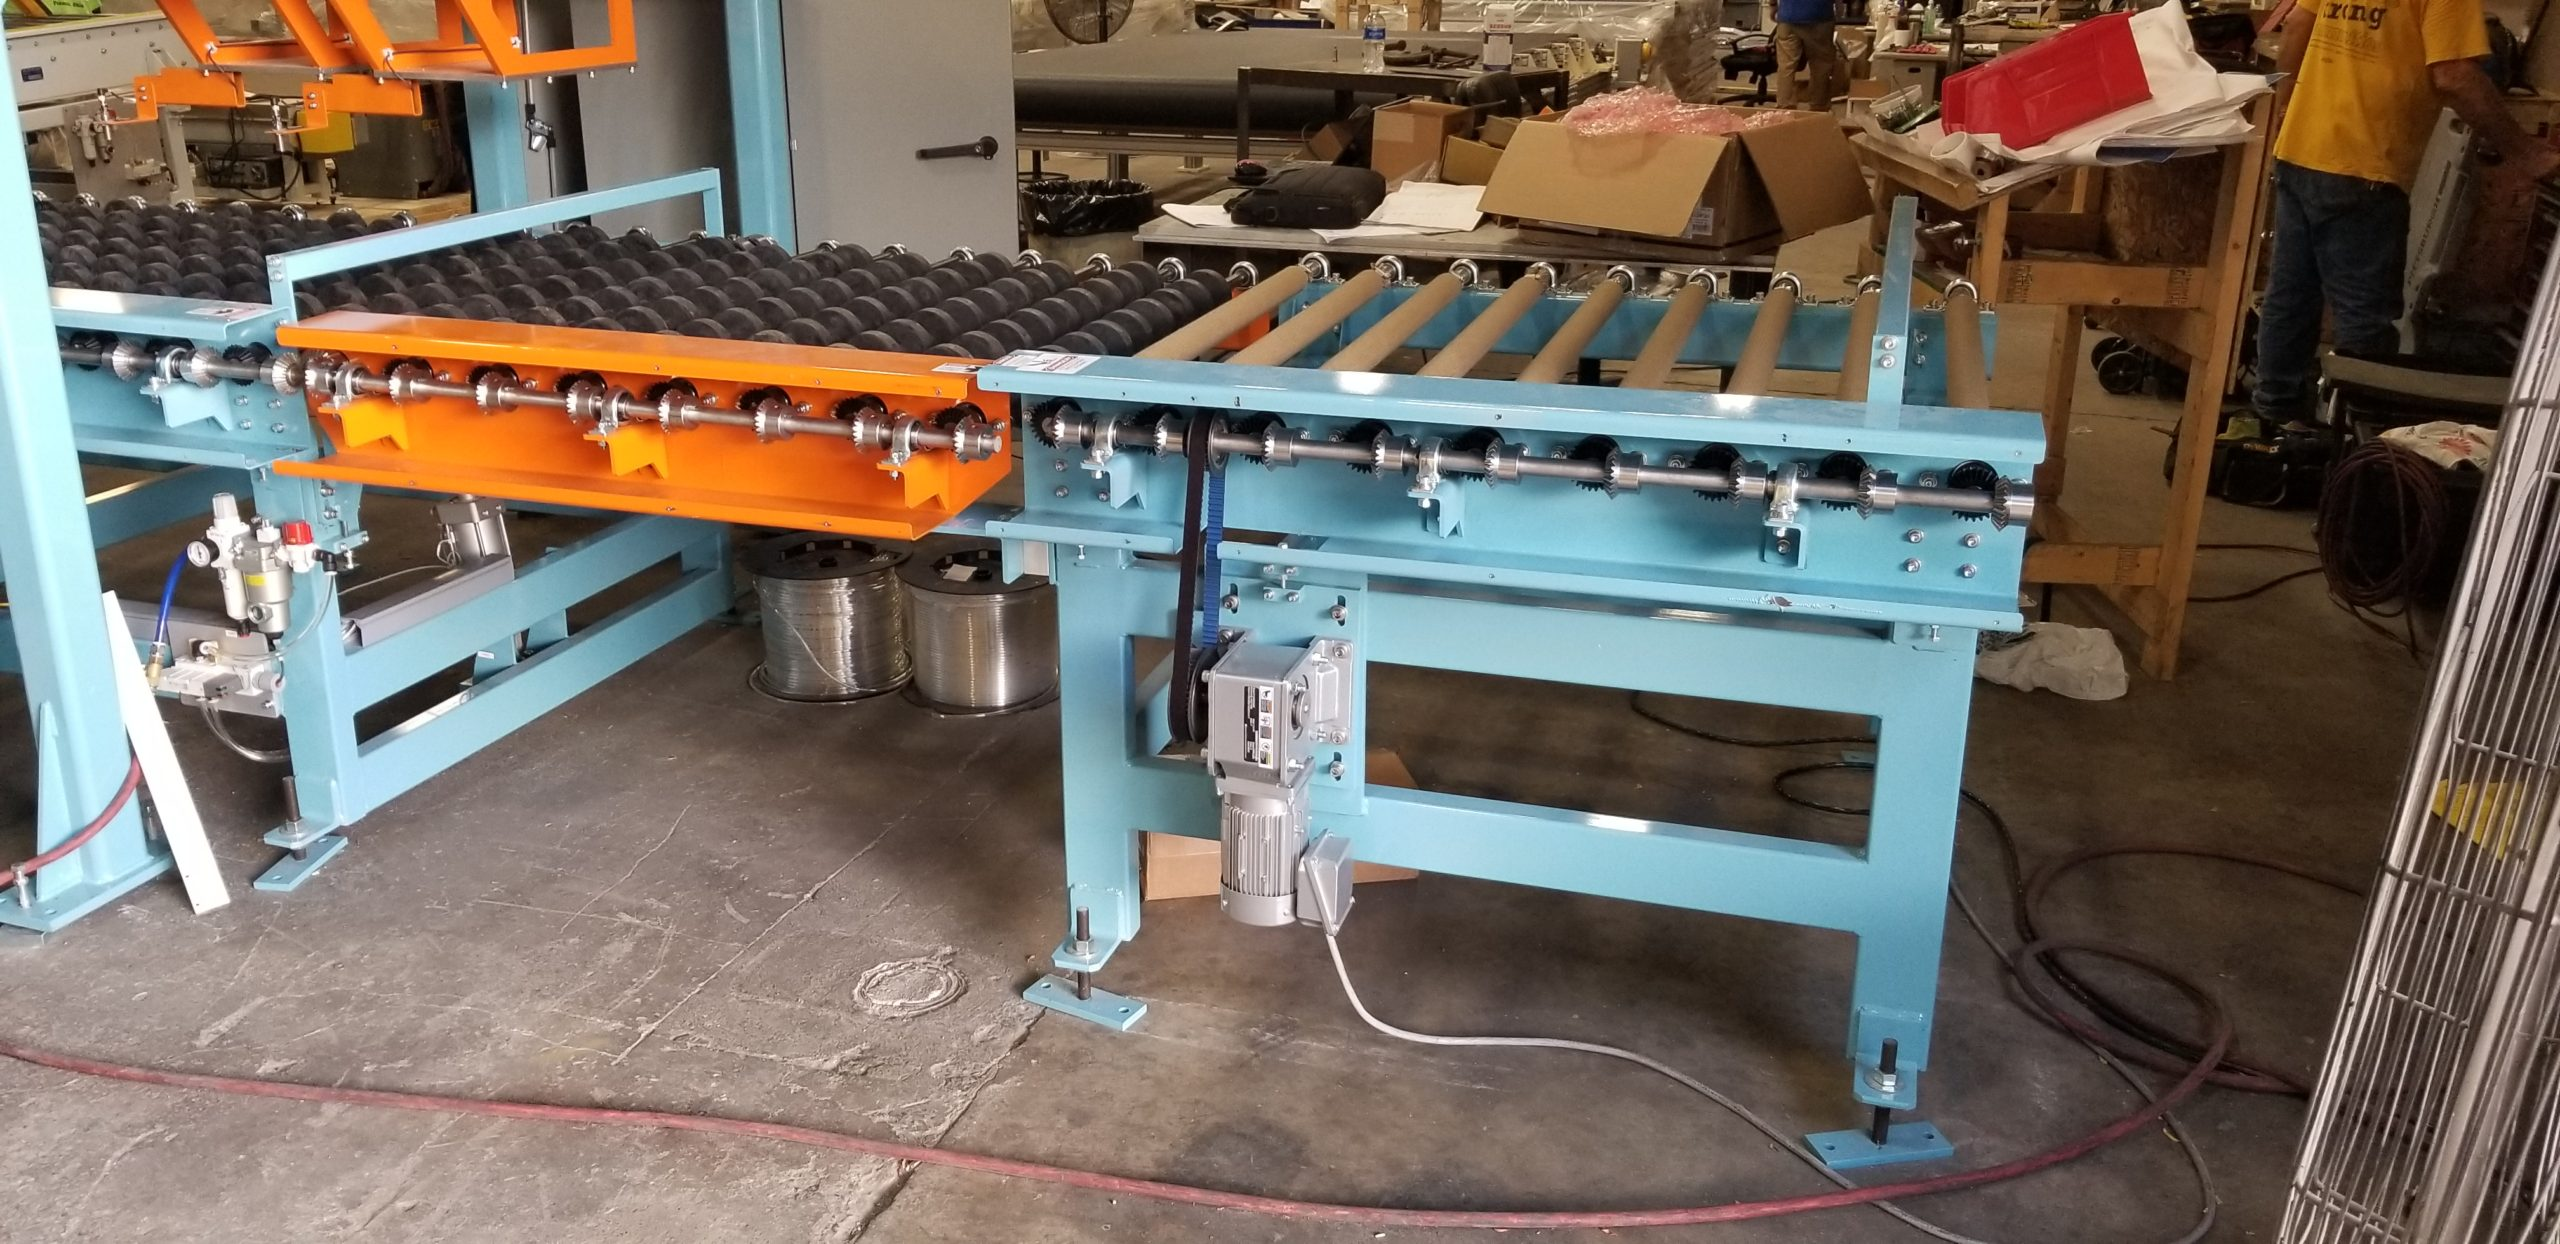 Roll Conveyors - Pivoting Miter Gear(Furnace emergency ejection) | Glassline